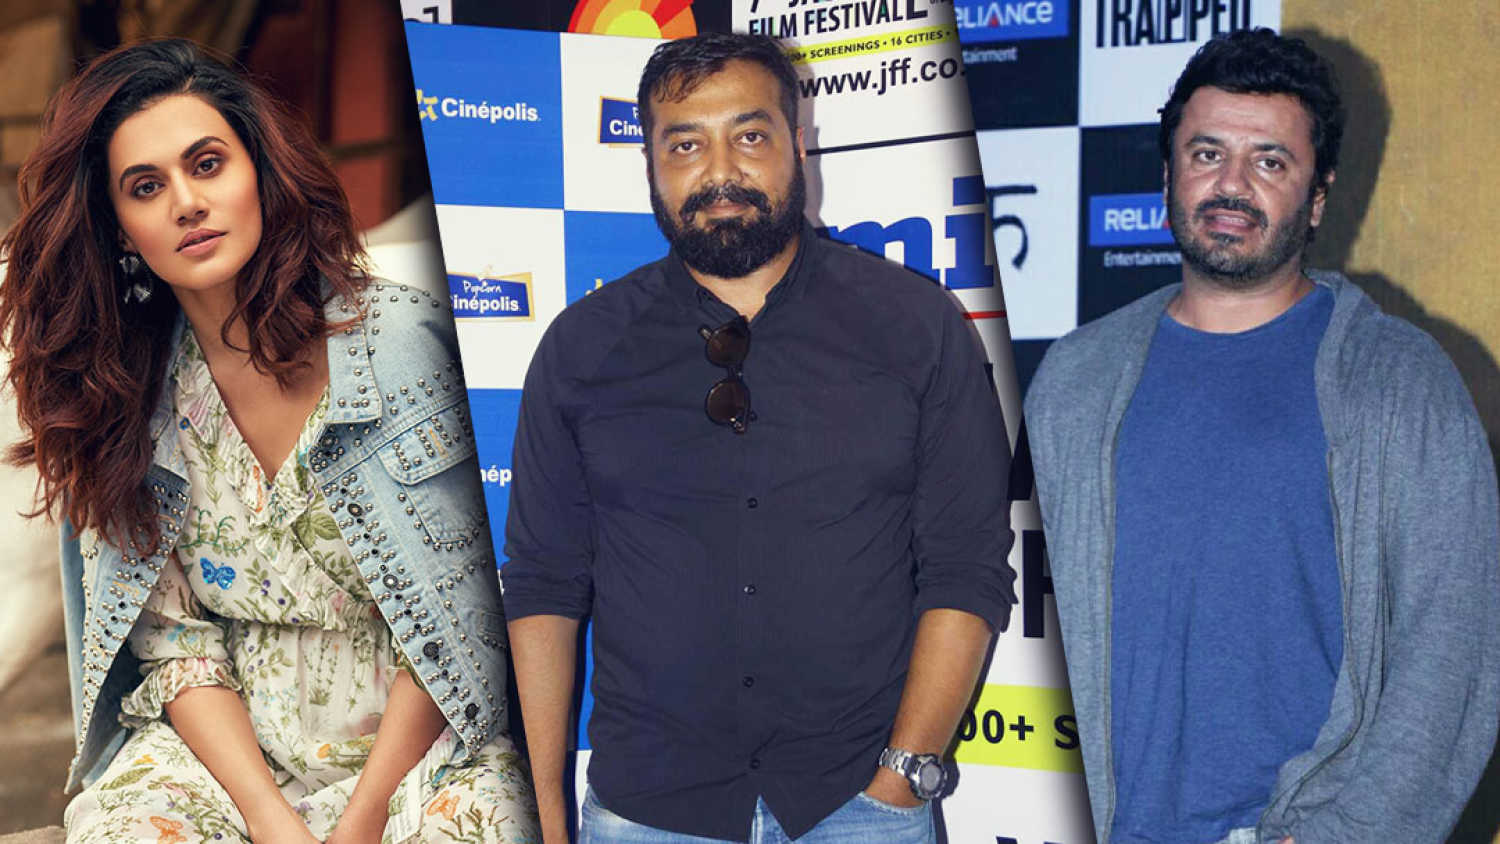 Income tax officials raid Taapsee Pannu, Anurag Kashyap and Vikas Bahl's residences